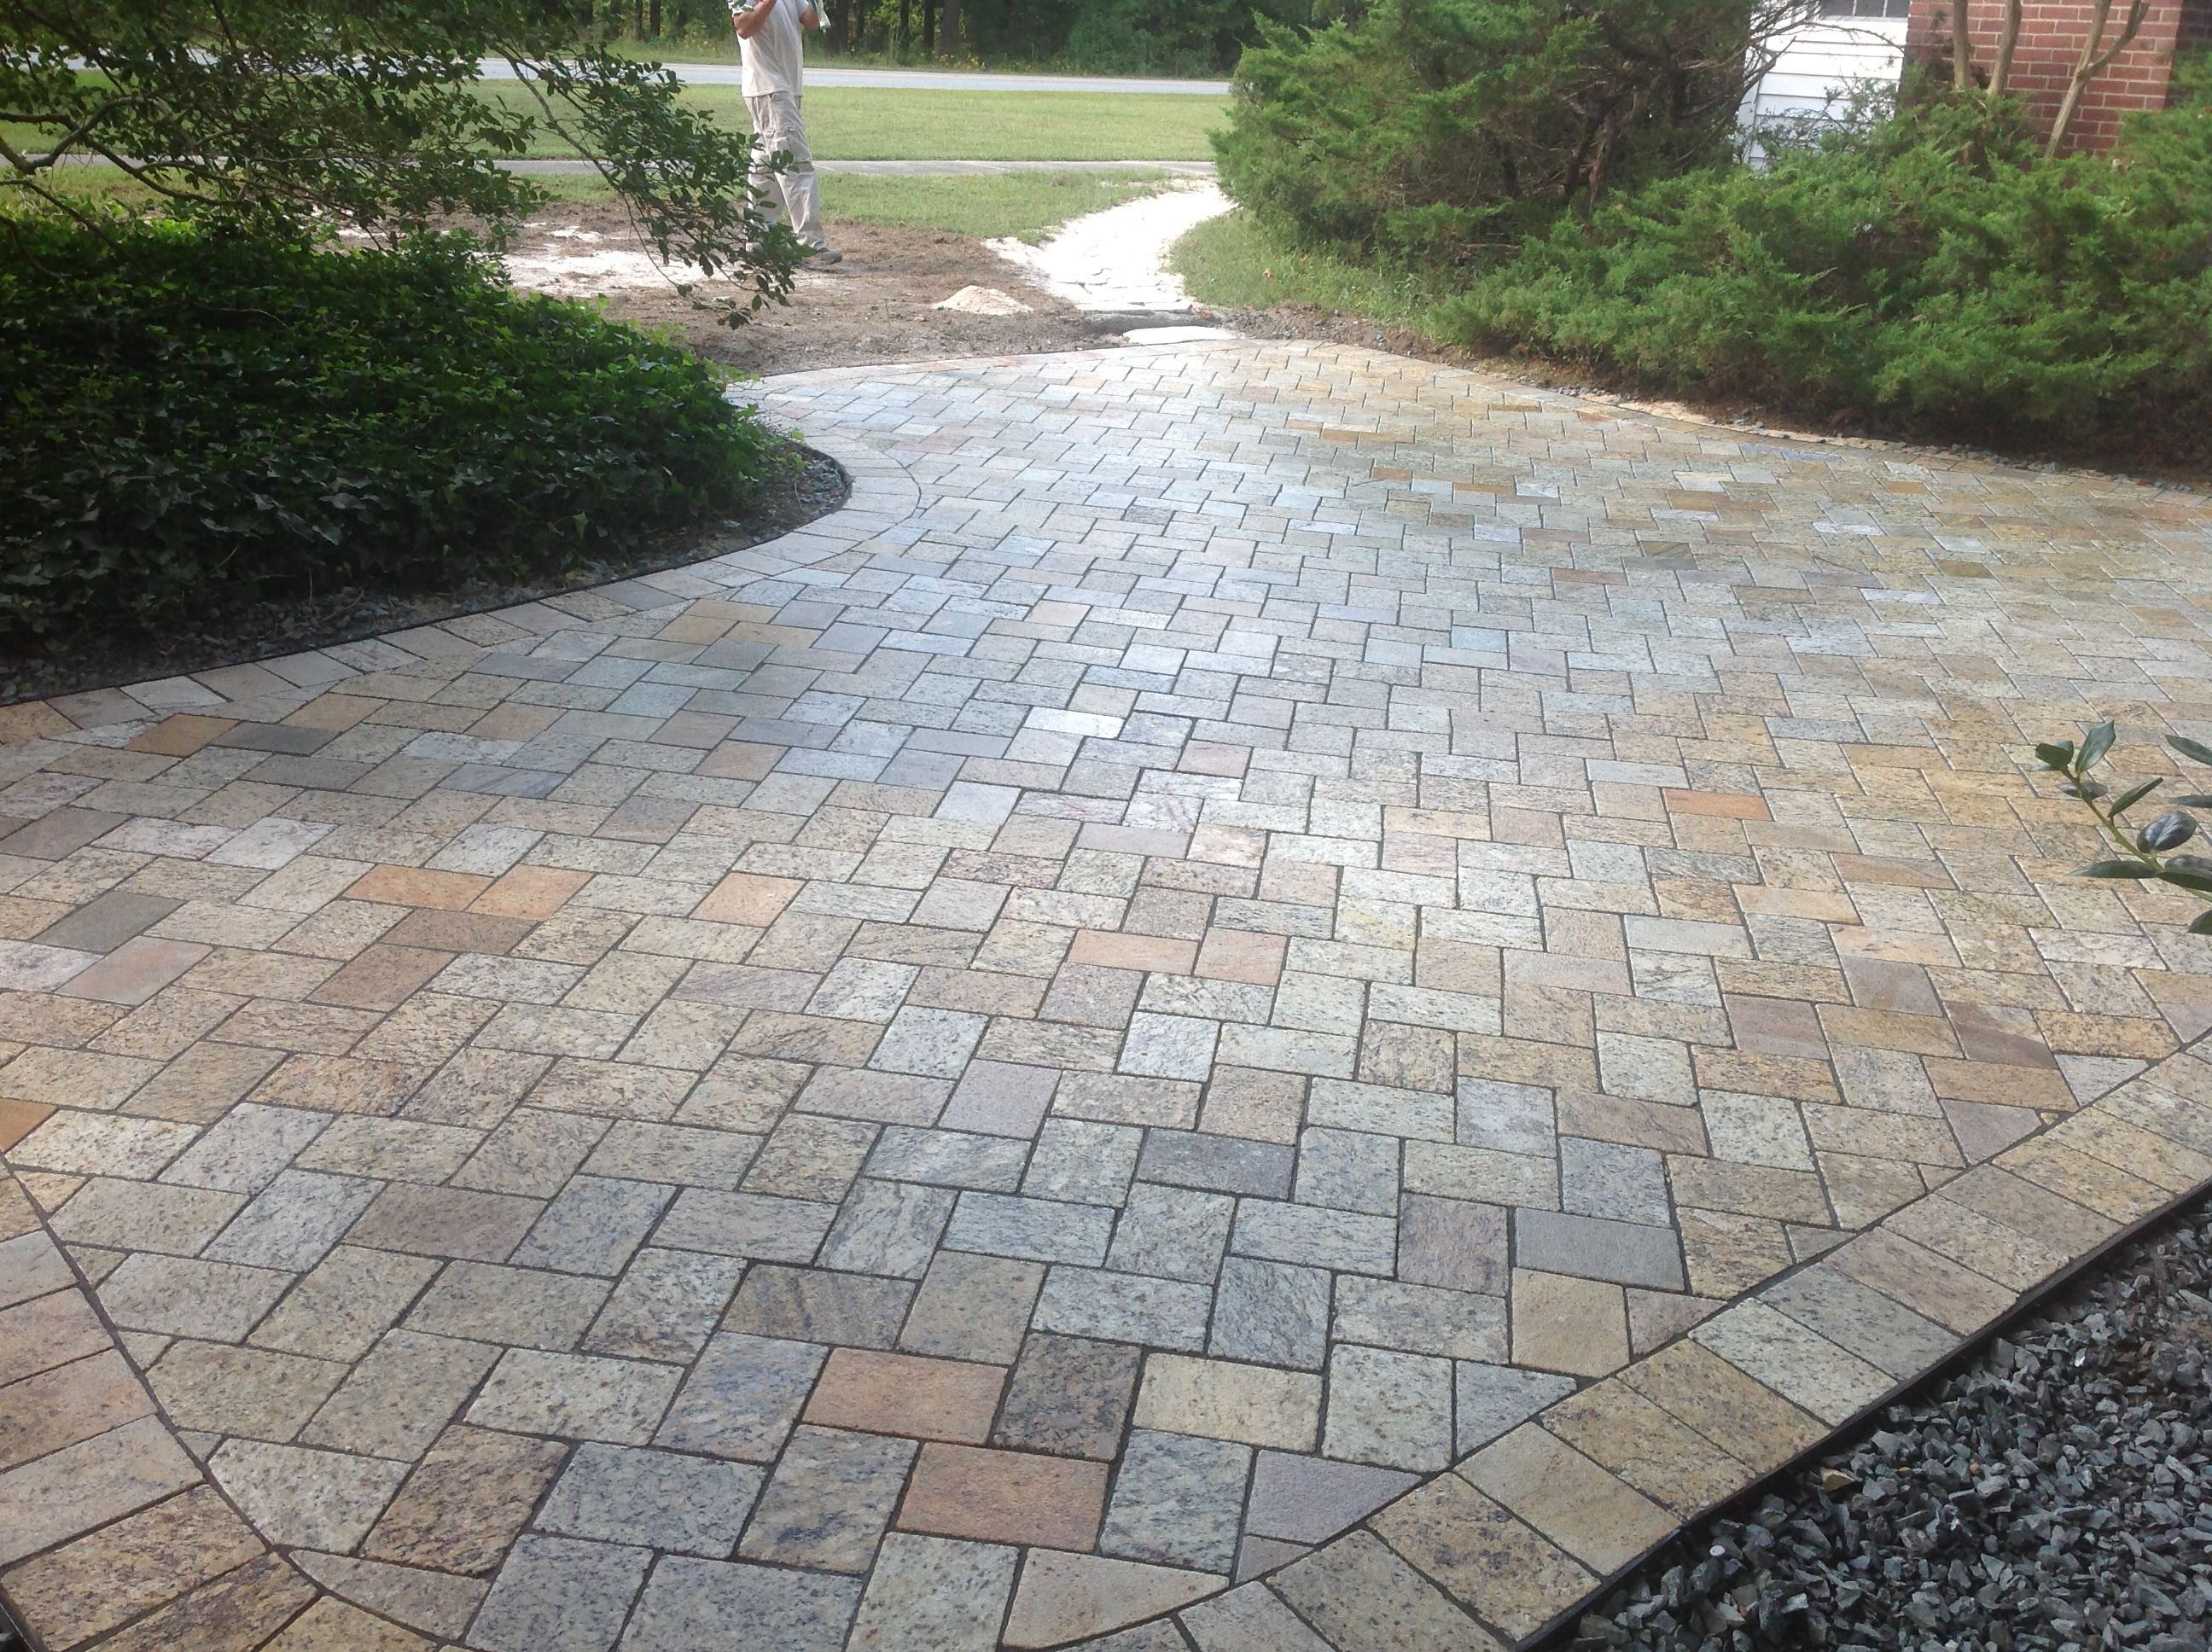 earthstoneproducts.net.    Recycled granite patio pavers used to create this meditation patio.